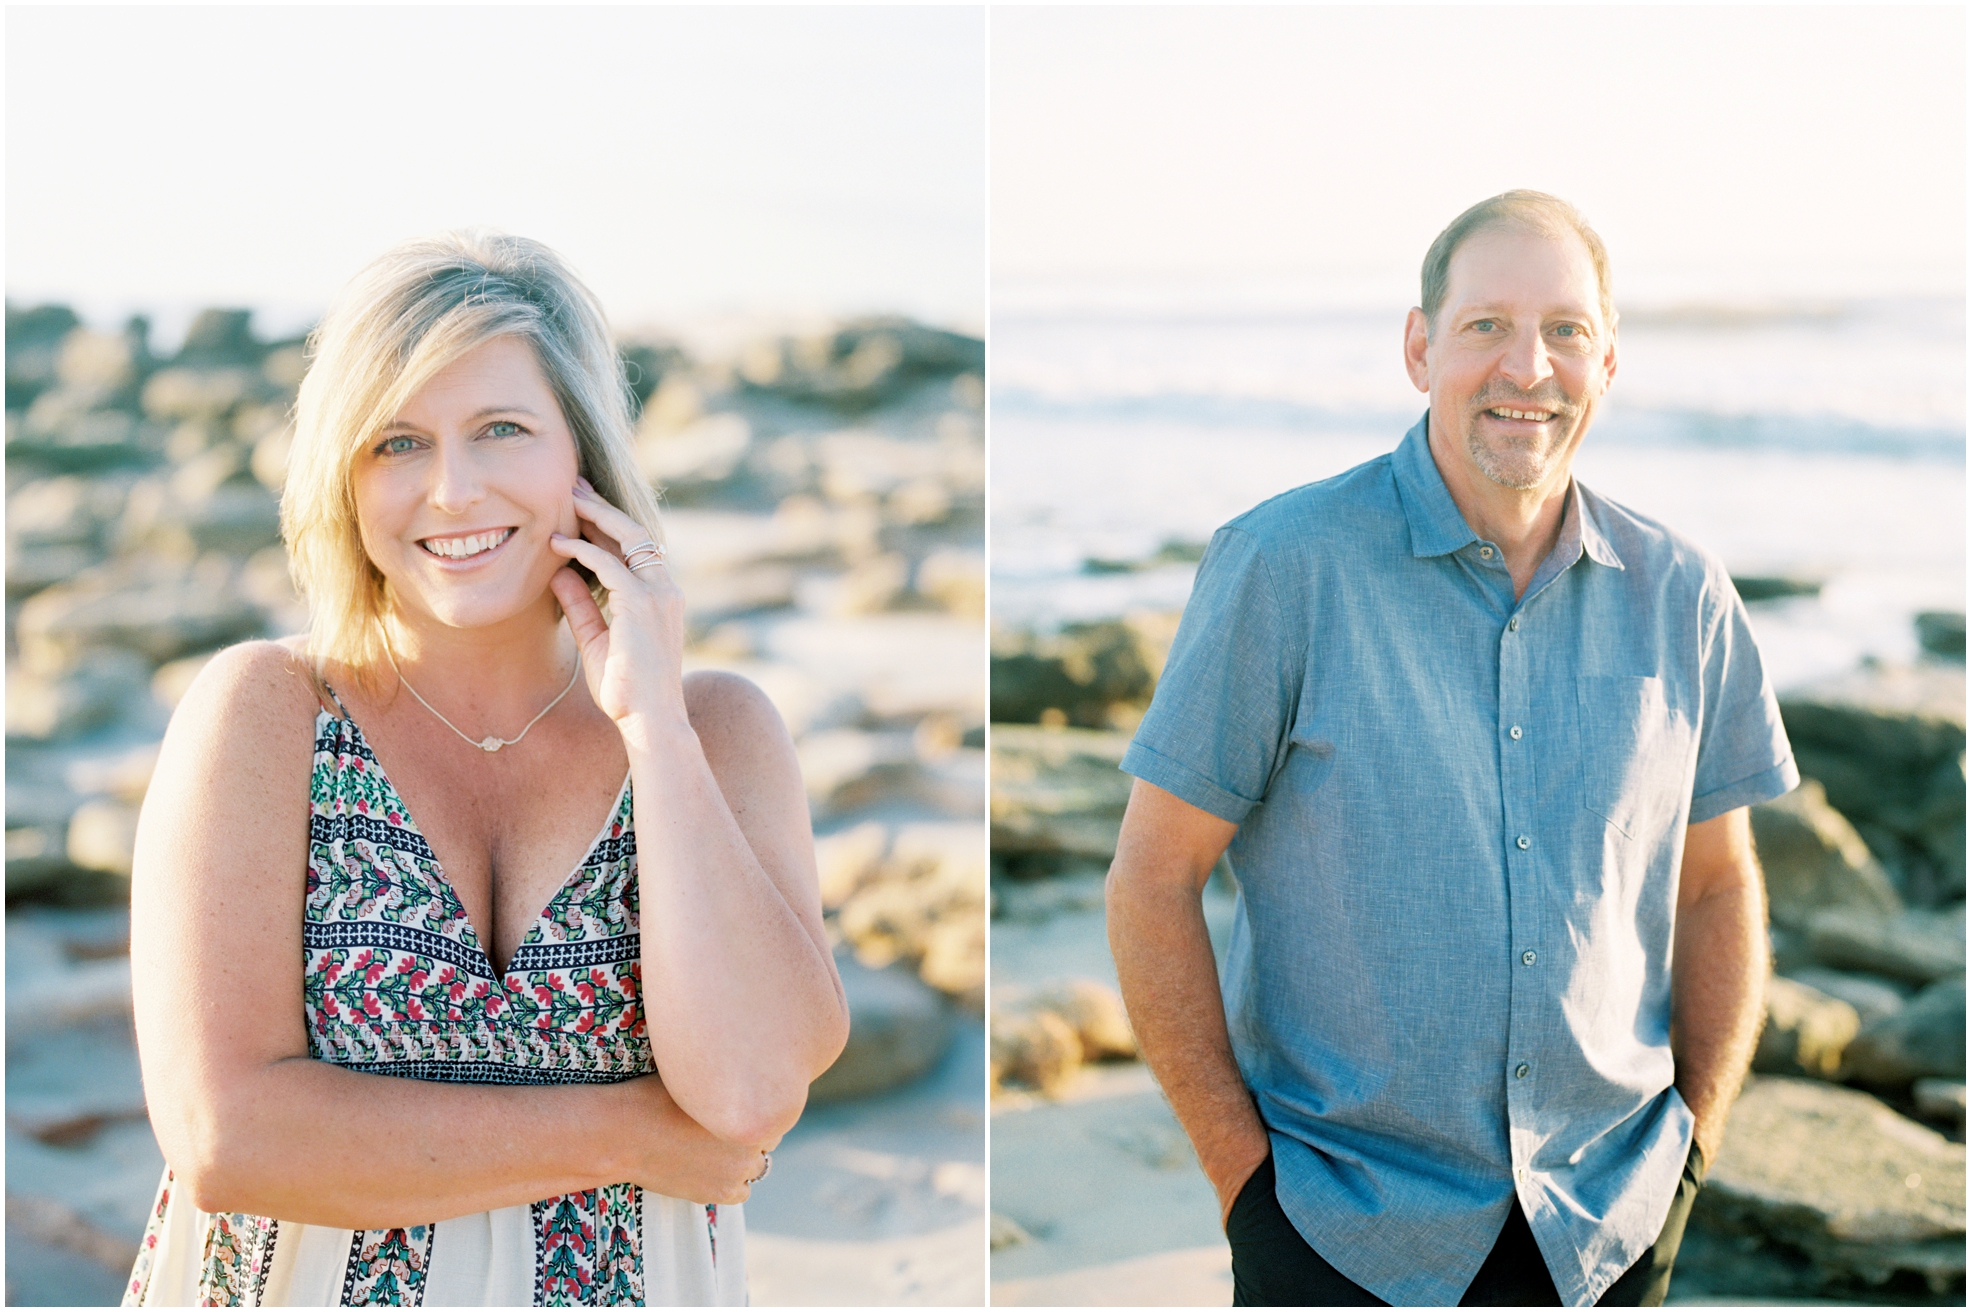 Lisa Silva Photography- Jacksonville, St. Augustine, Amelia Island, Ponte Vedra Beach, North East Florida Fine Art Film Photographer- Anniversary Session at Washington Oaks in Palm Coast, Florida_0015.jpg